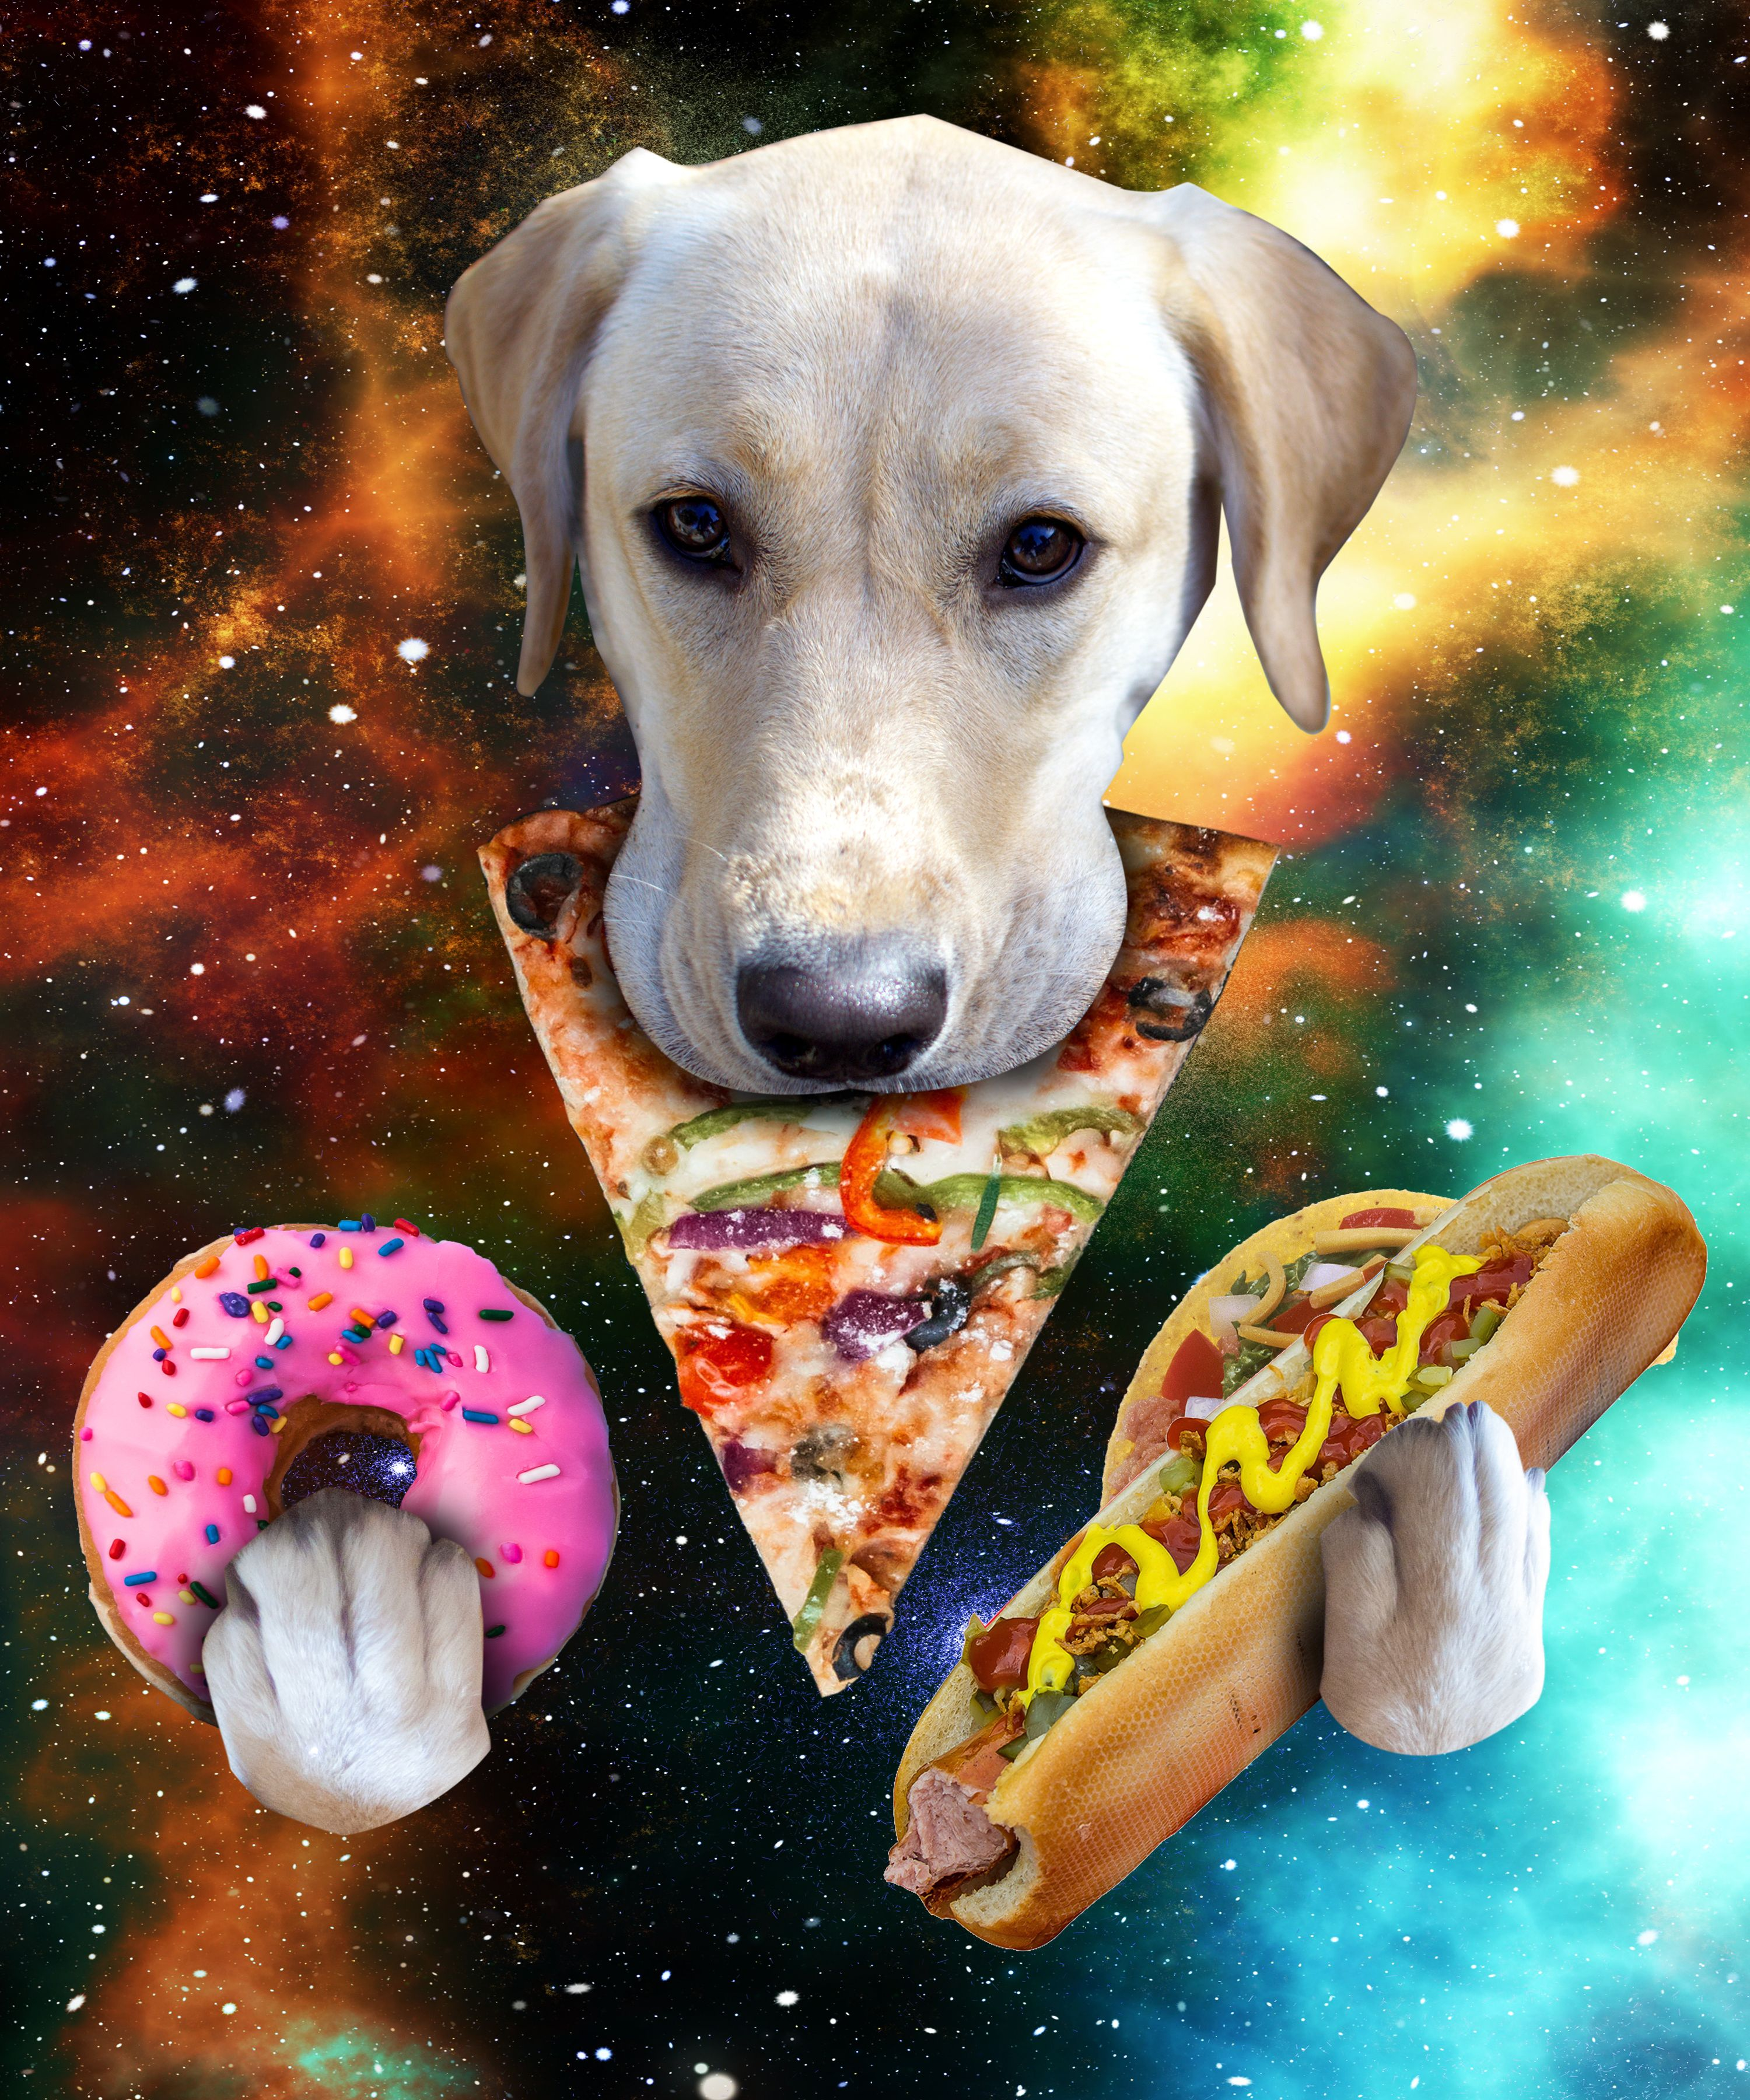 Dog Eat Pizza Food In Space Shirt Funny Gift For Dog Lover Dog